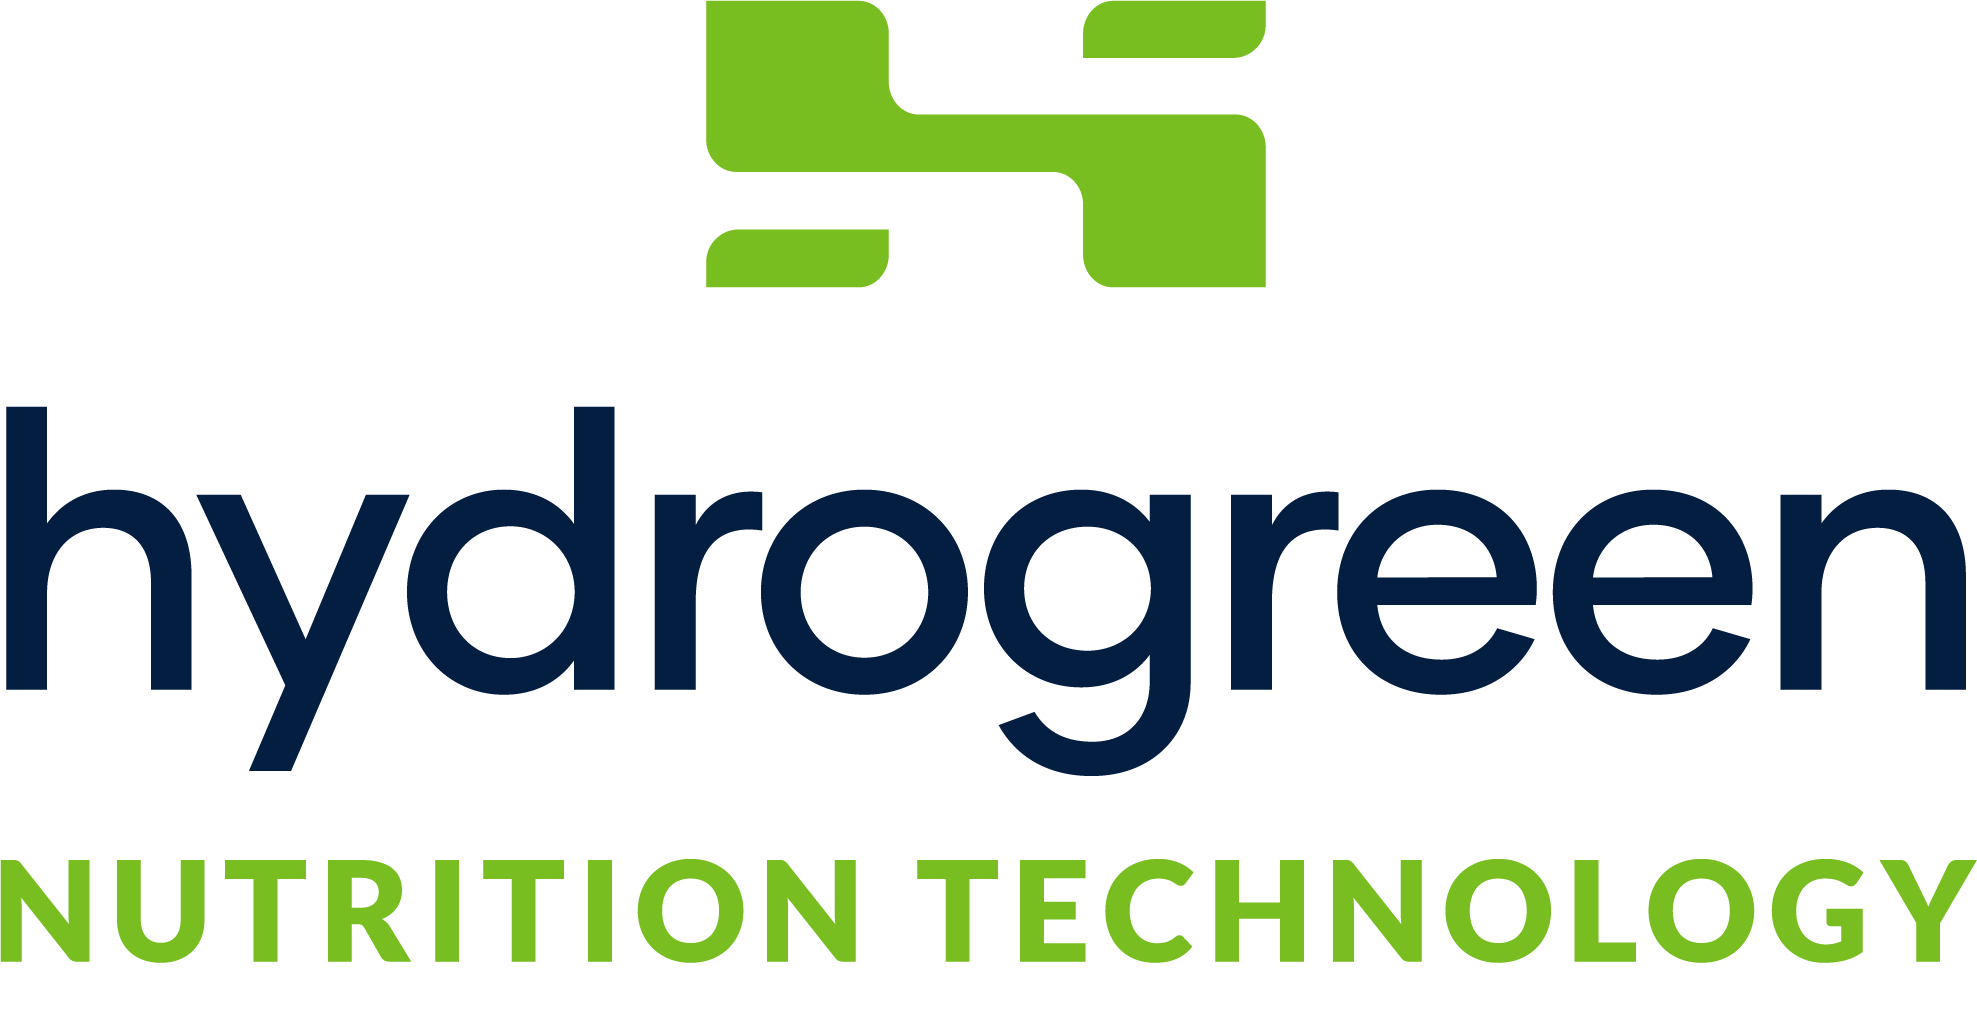 HydroGreen: Reliable & Automated Animal Feed Technology